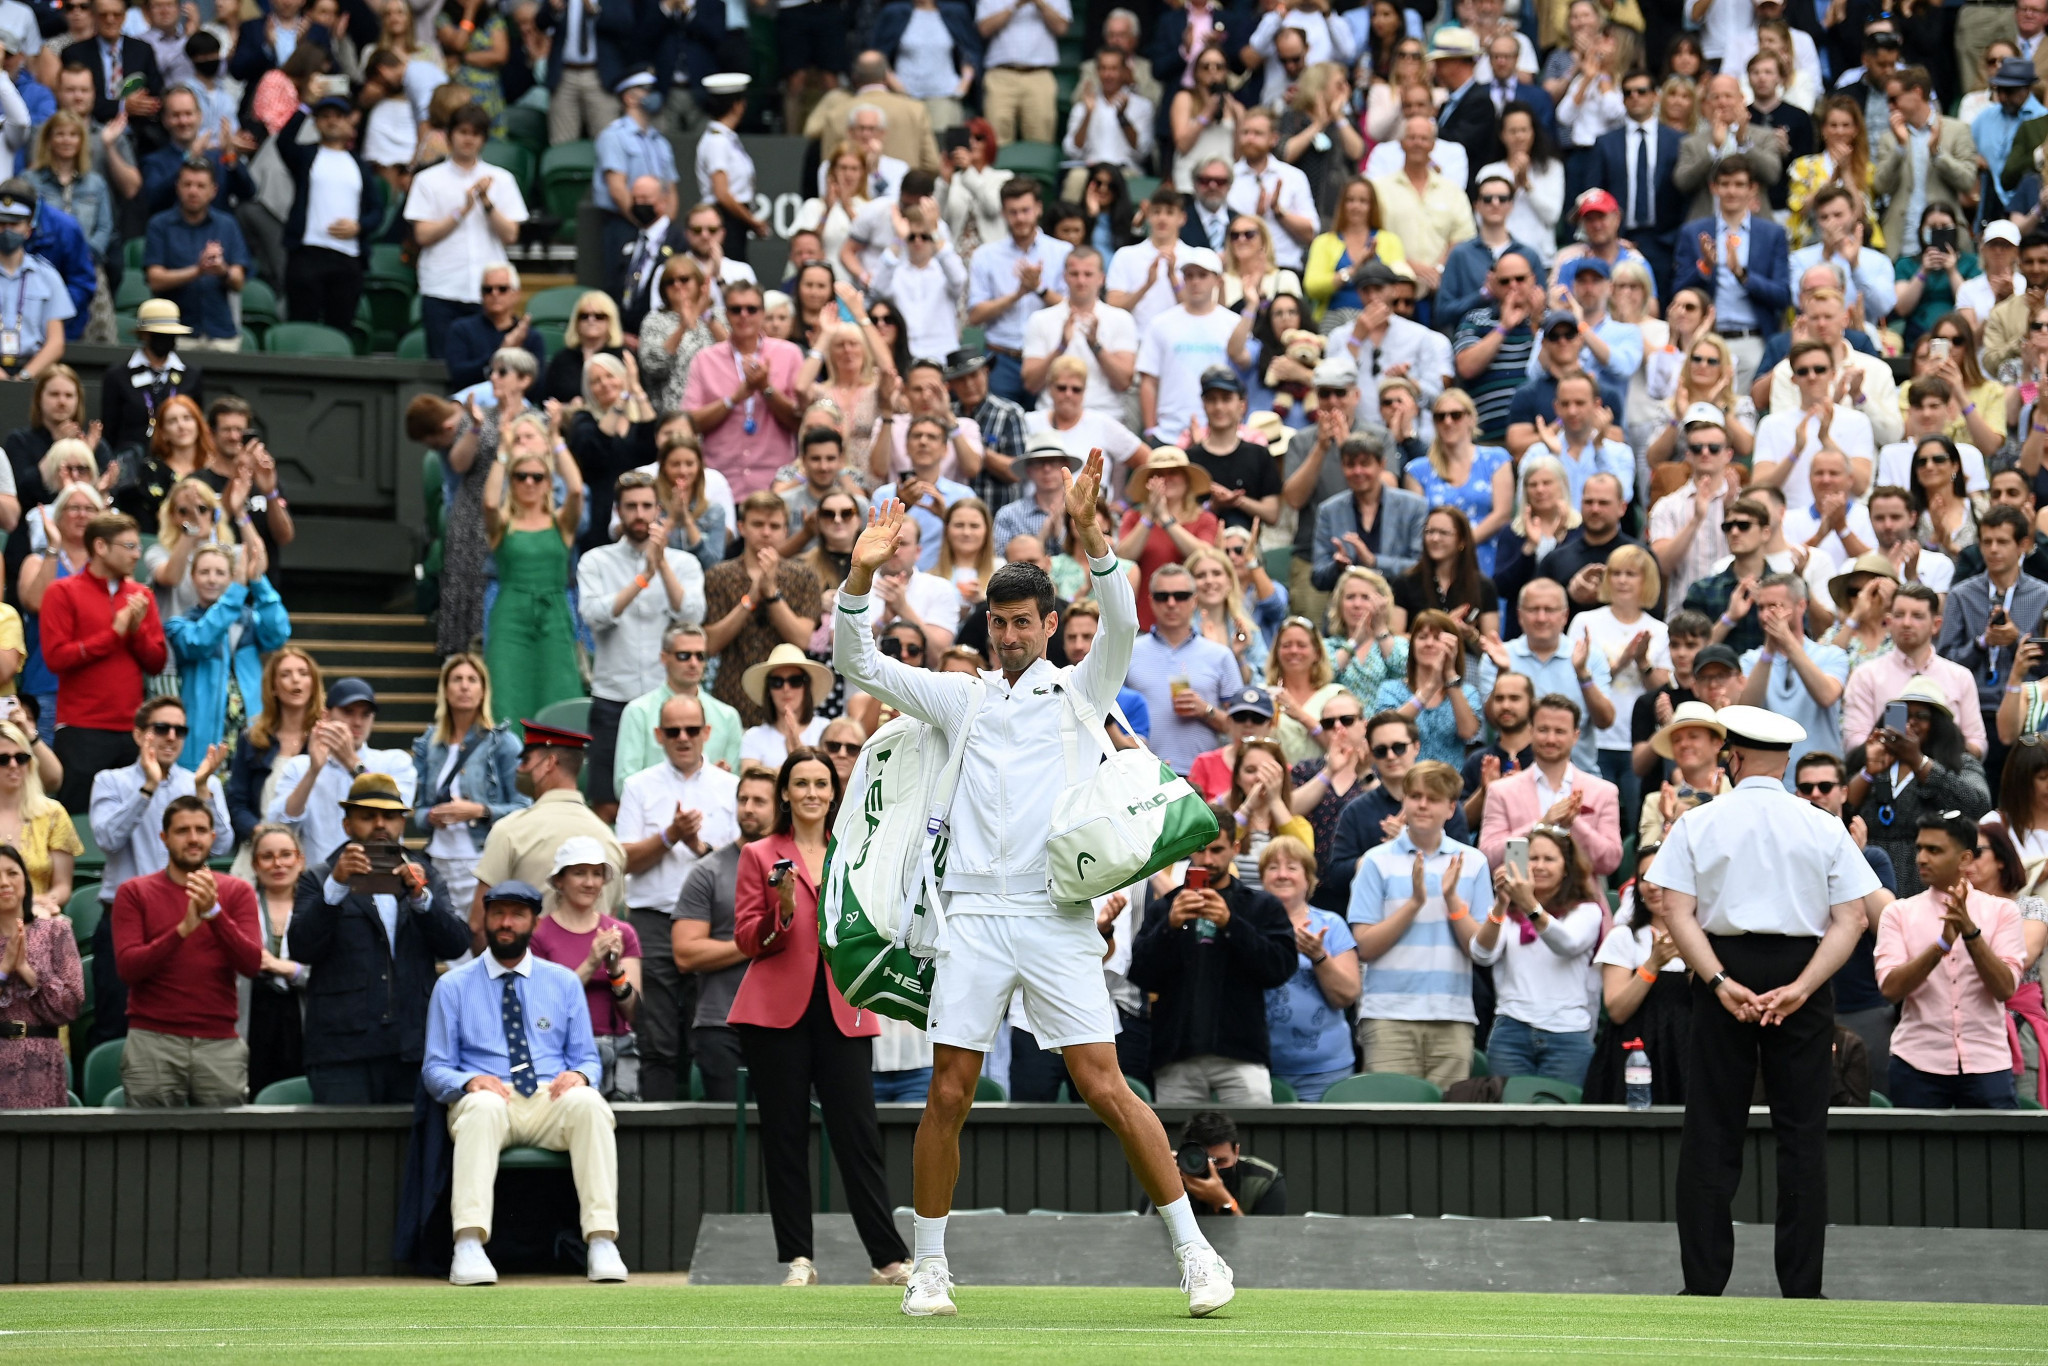 Wimbledon show courts to have capacity crowds from quarter-finals onward